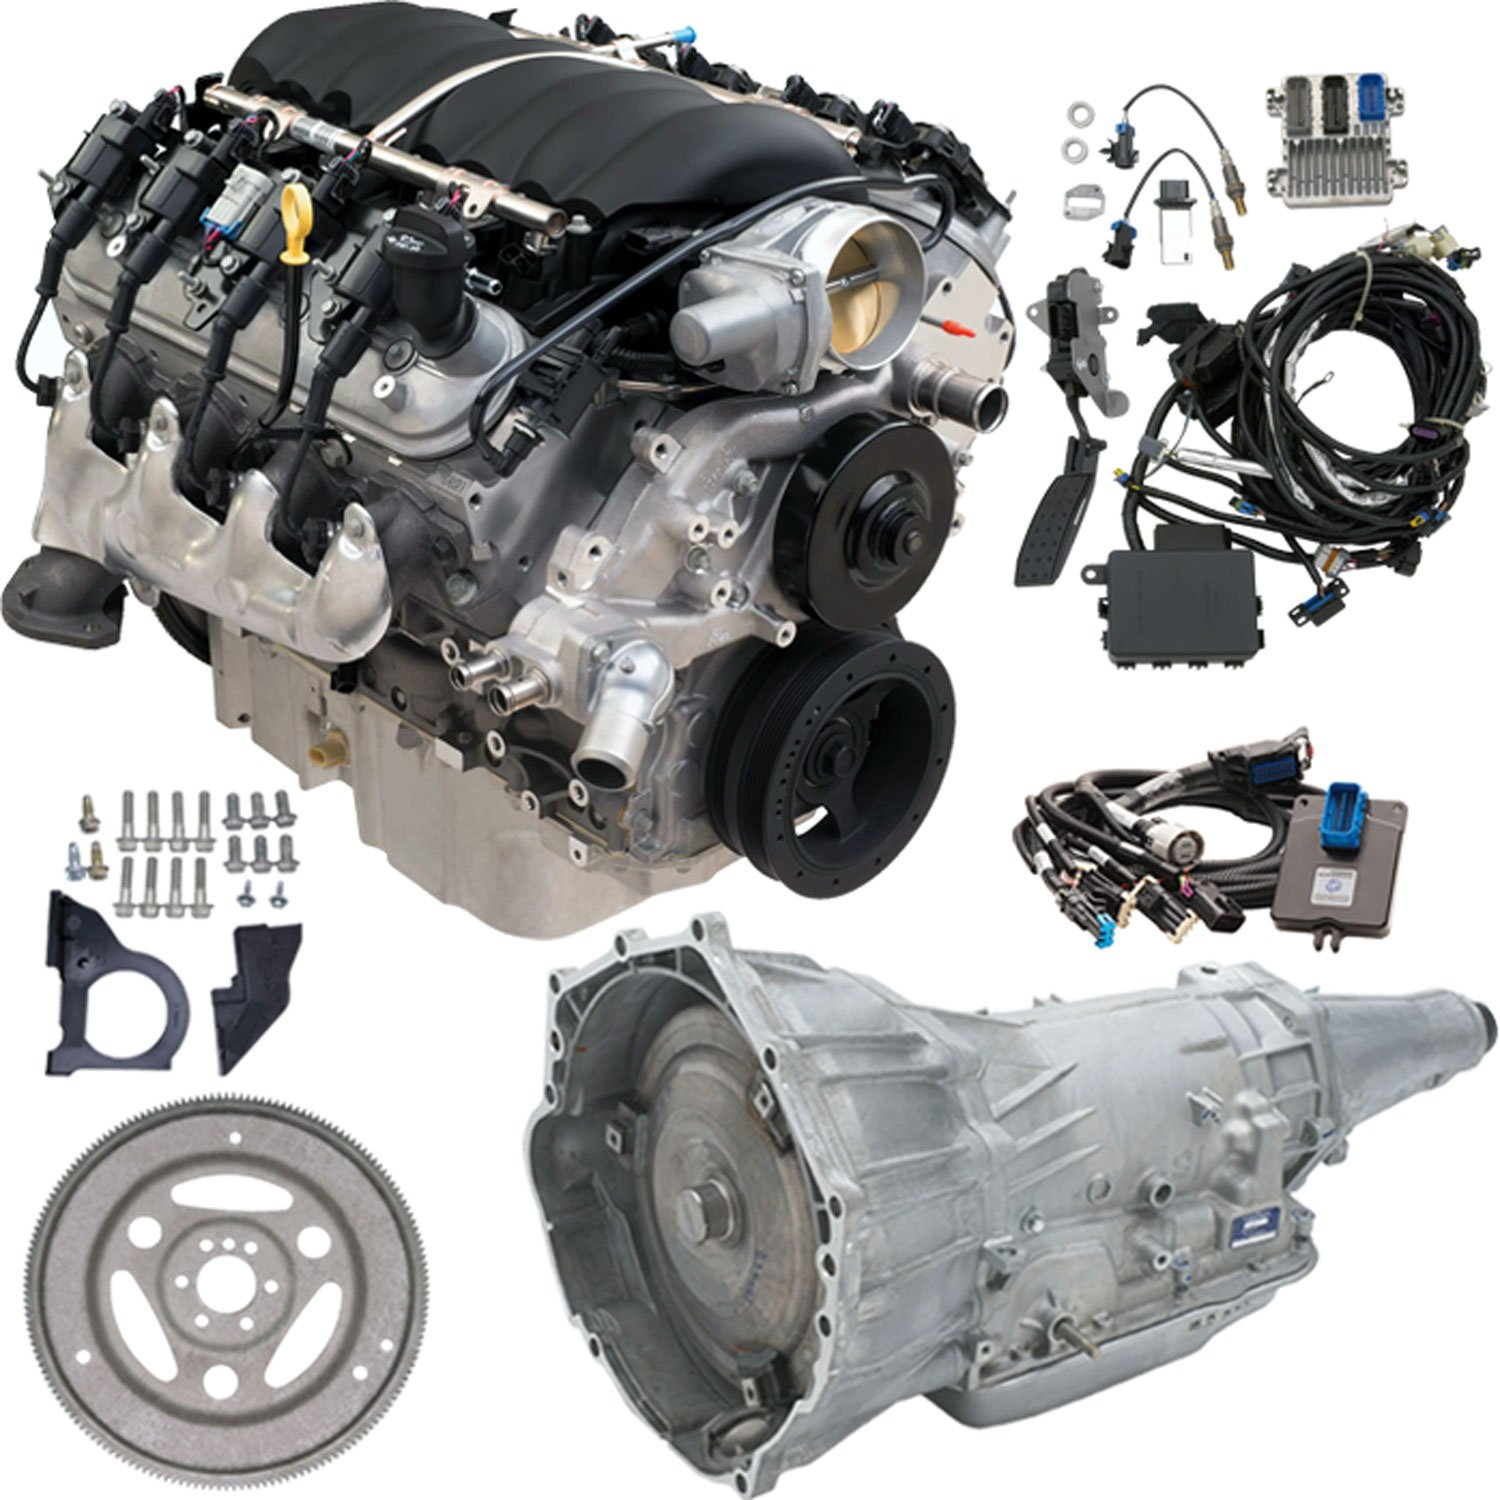 Chevrolet Performance CPSLS34L65E - Chevrolet Performance LS3 6.2L/430HP Gen IV Crate Powertrain